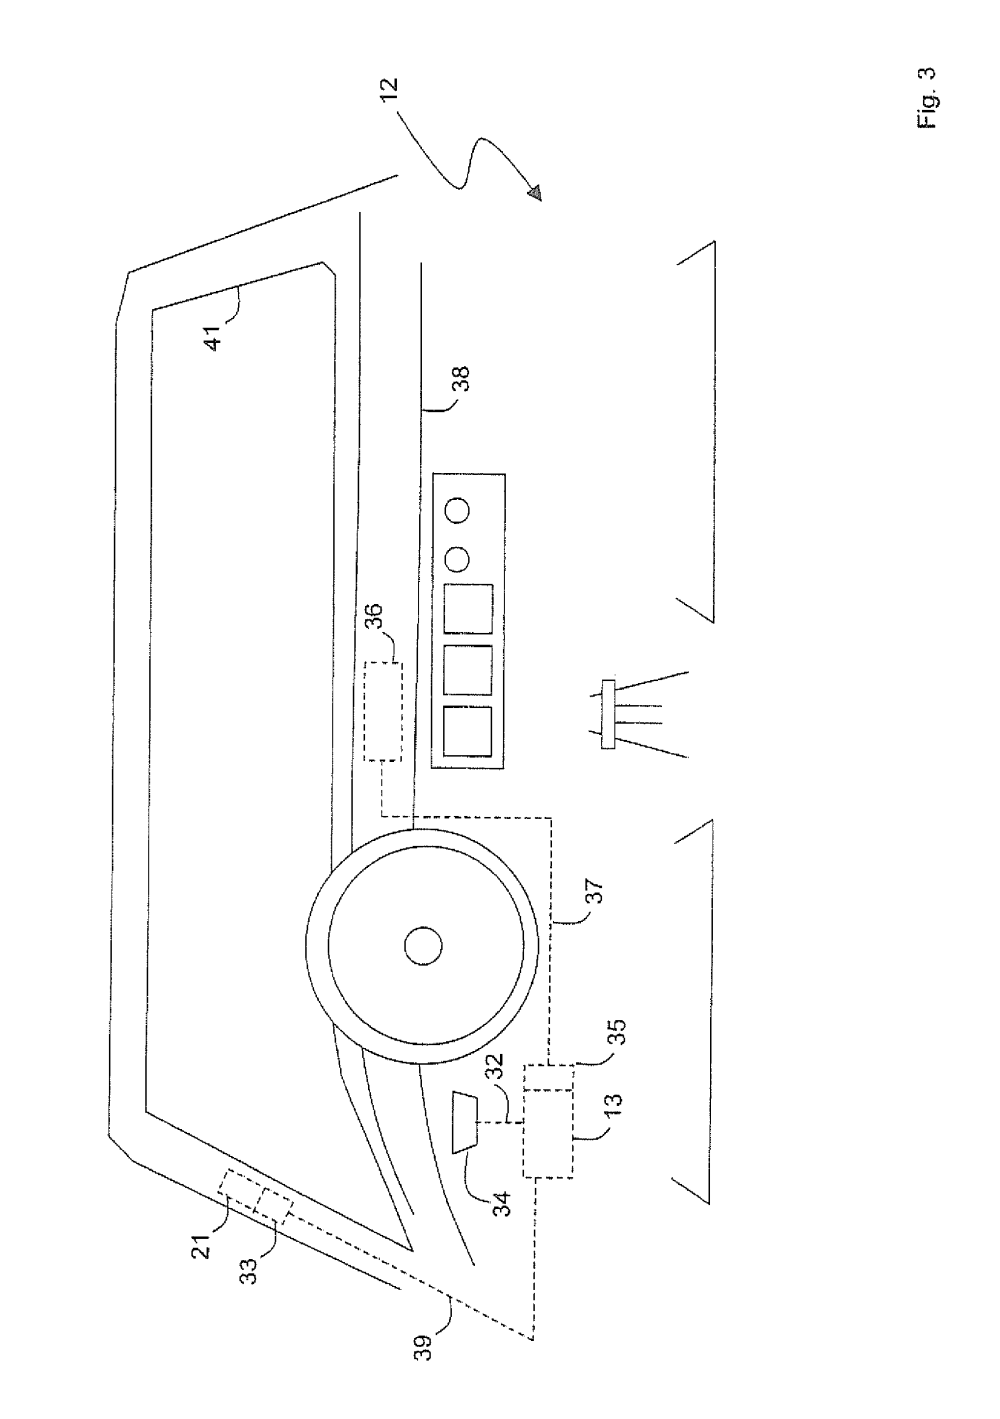 medium resolution of patent us 9 224 249 b2 view figure 6b same ignition shown in a semischematic diagram